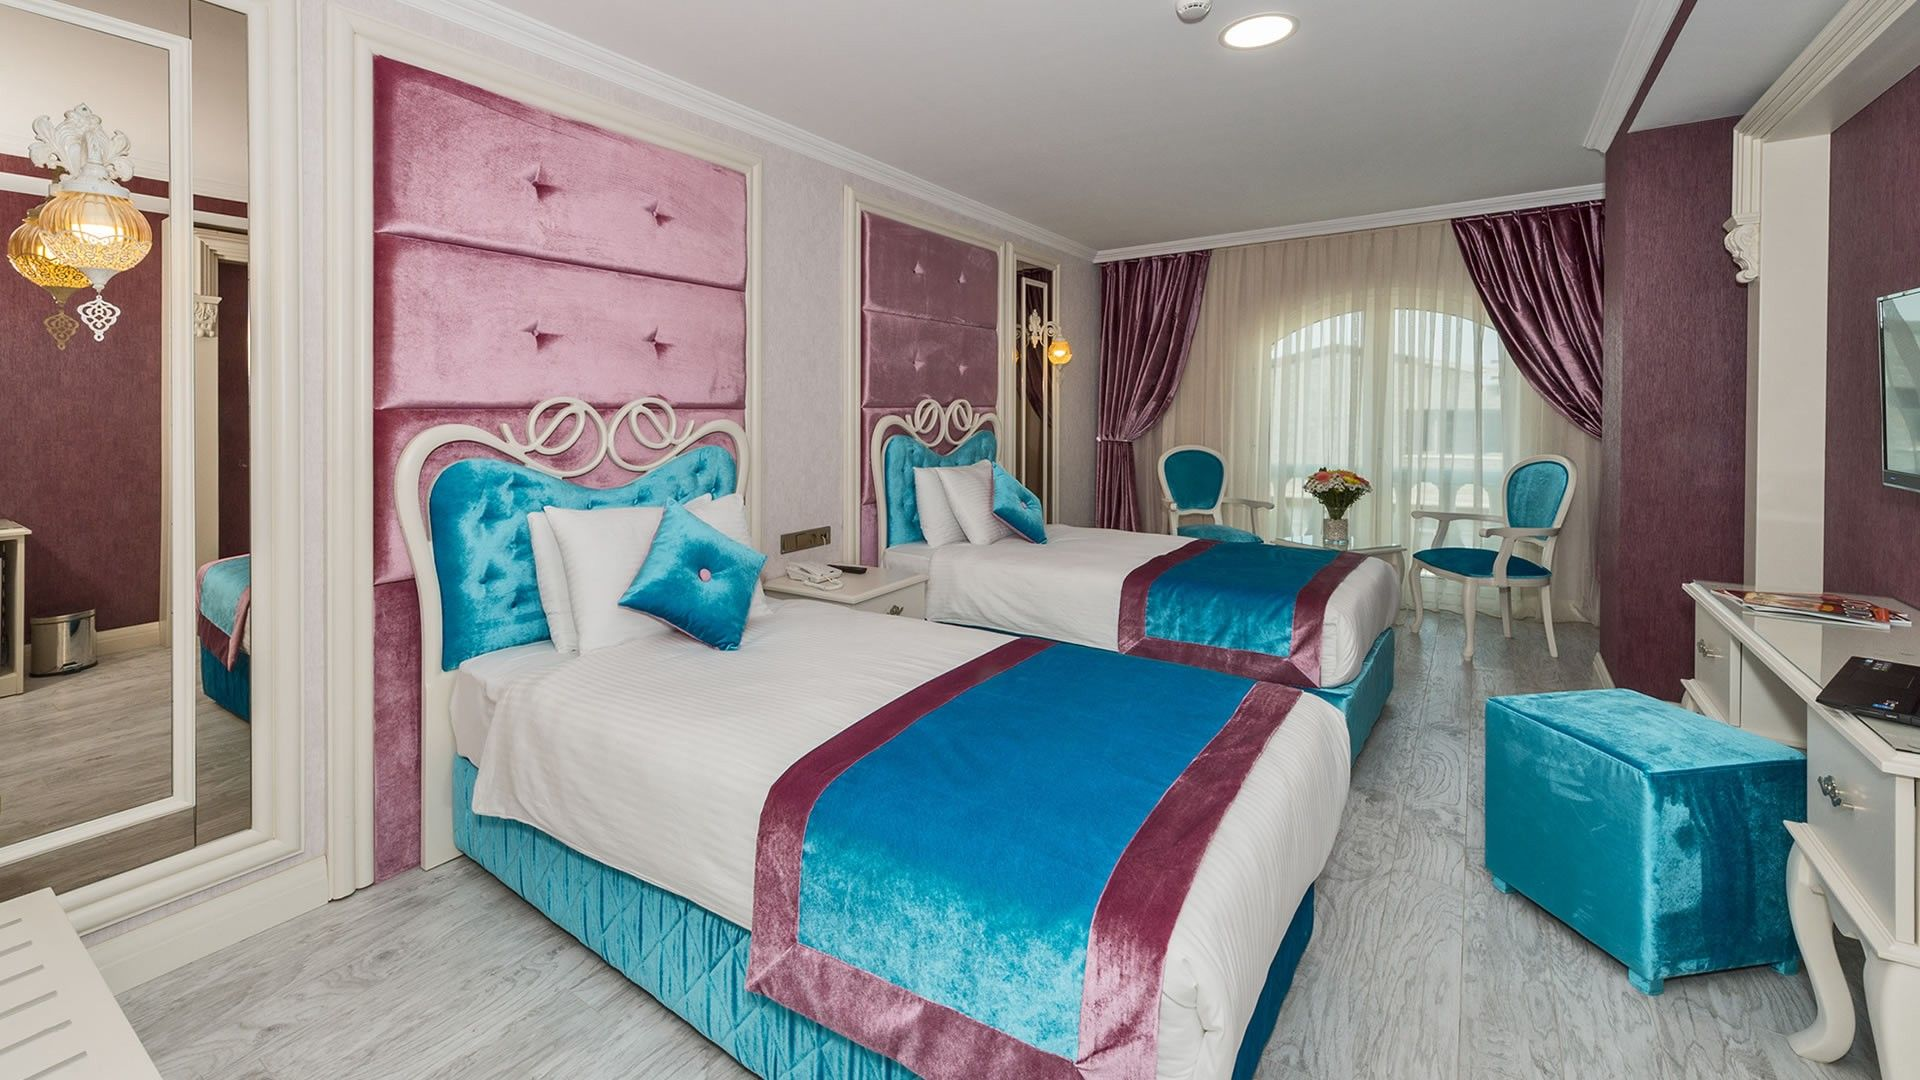 Marnas-hotels-istanbul-rooms-7